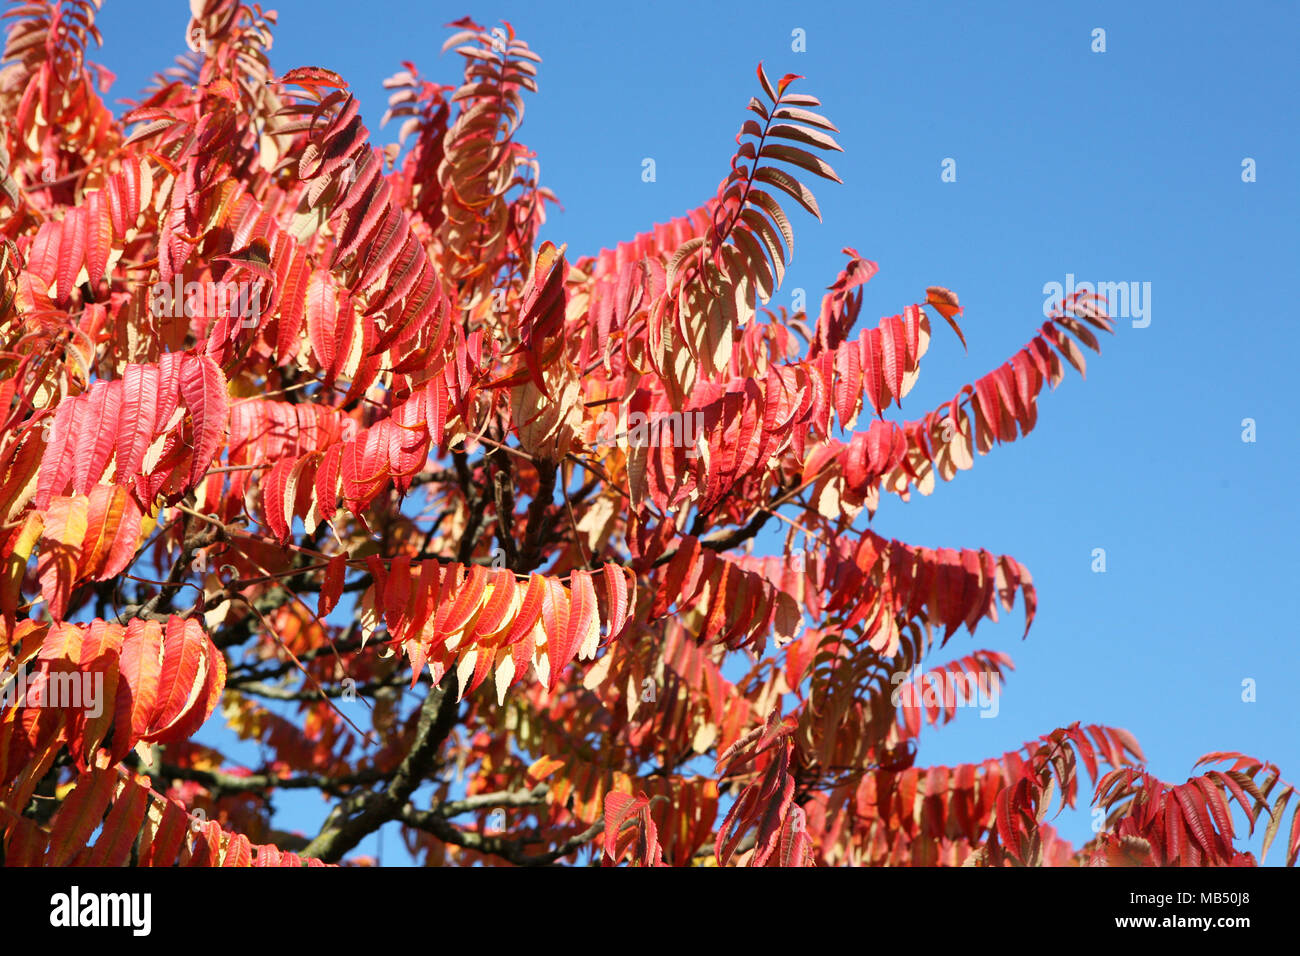 Red leaves branch in a blue sky - Stock Image